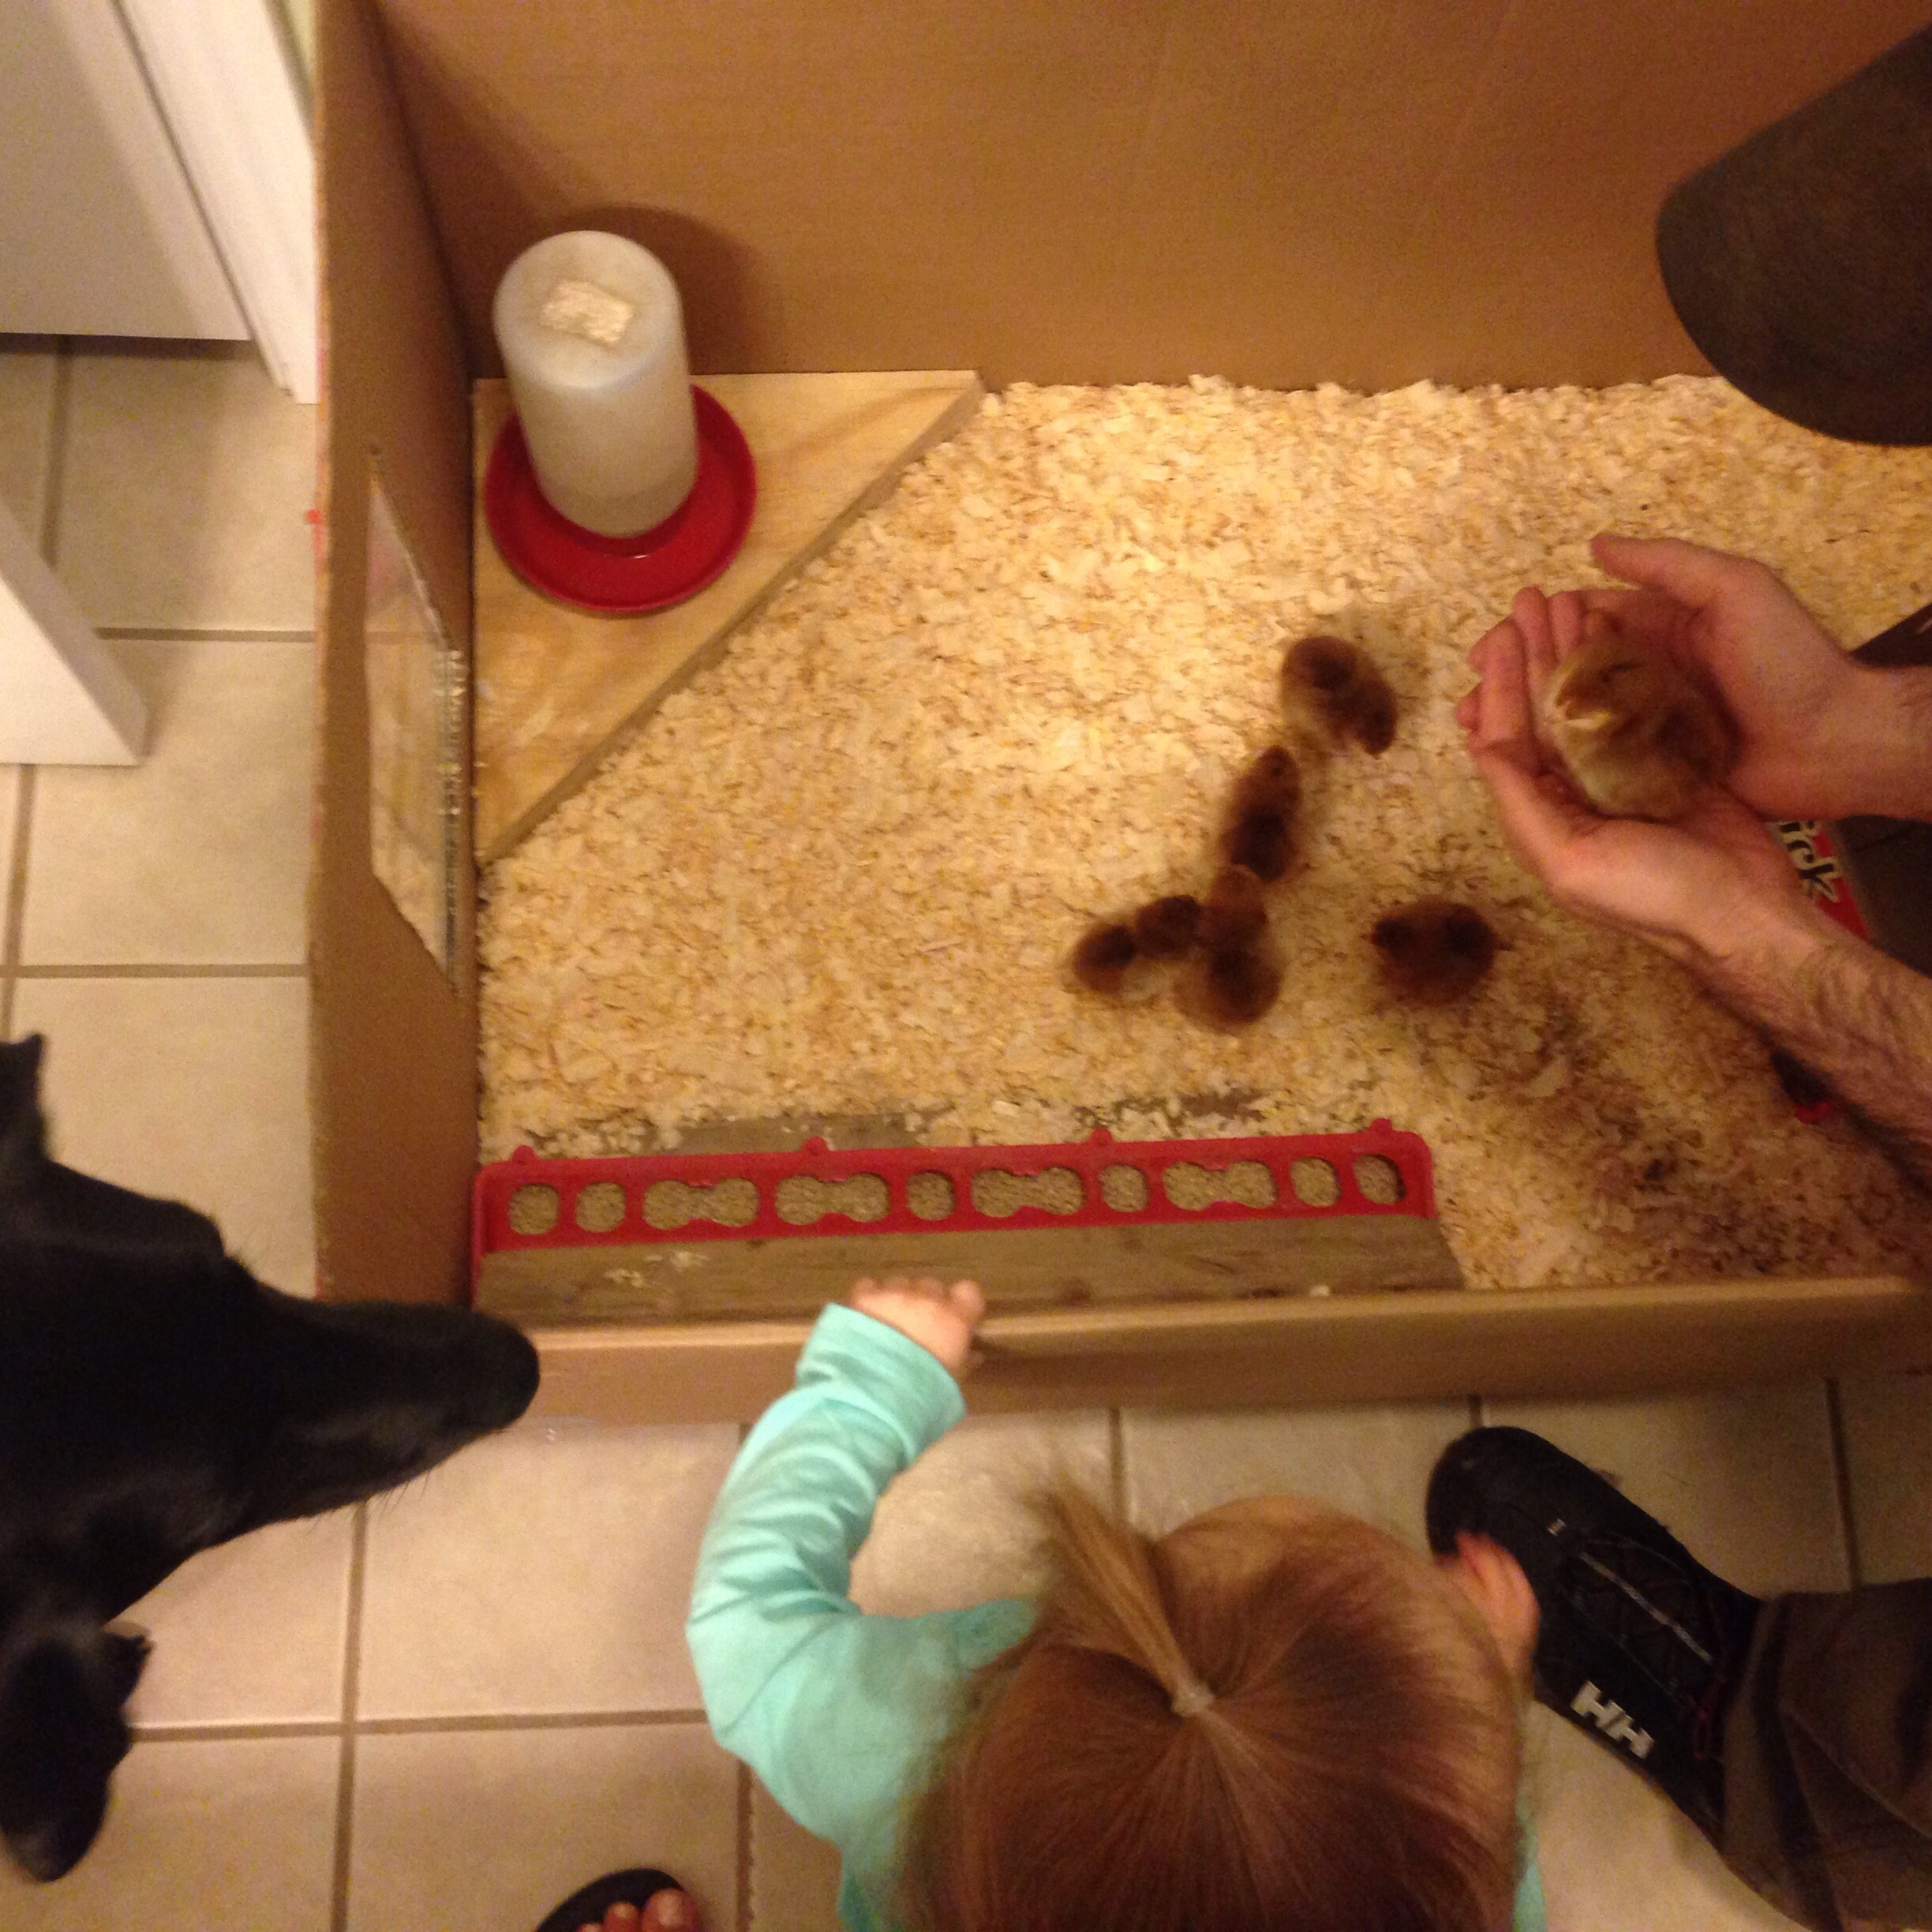 Introducing the new baby chicks to our toddler and dog